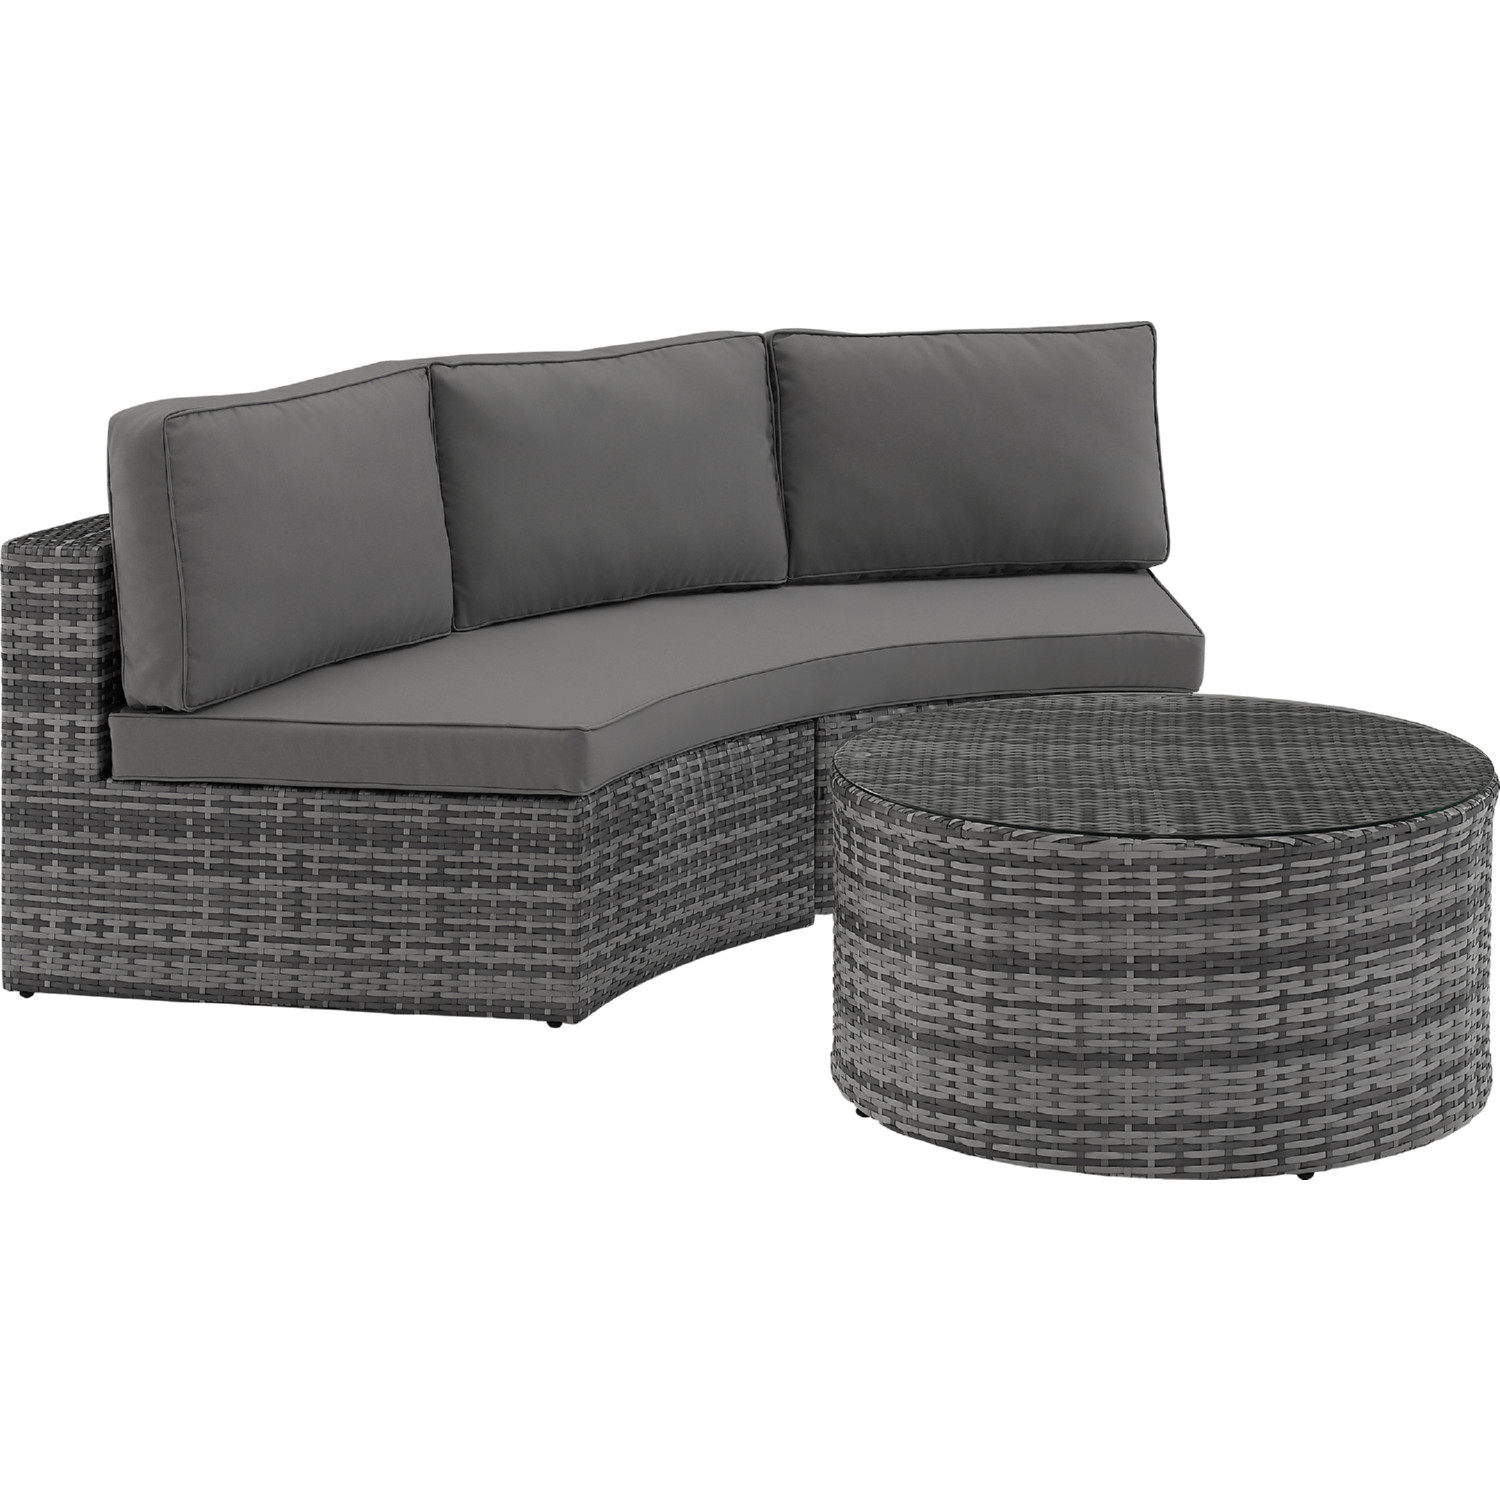 Outdoor Sectional Sofa Coffee Table